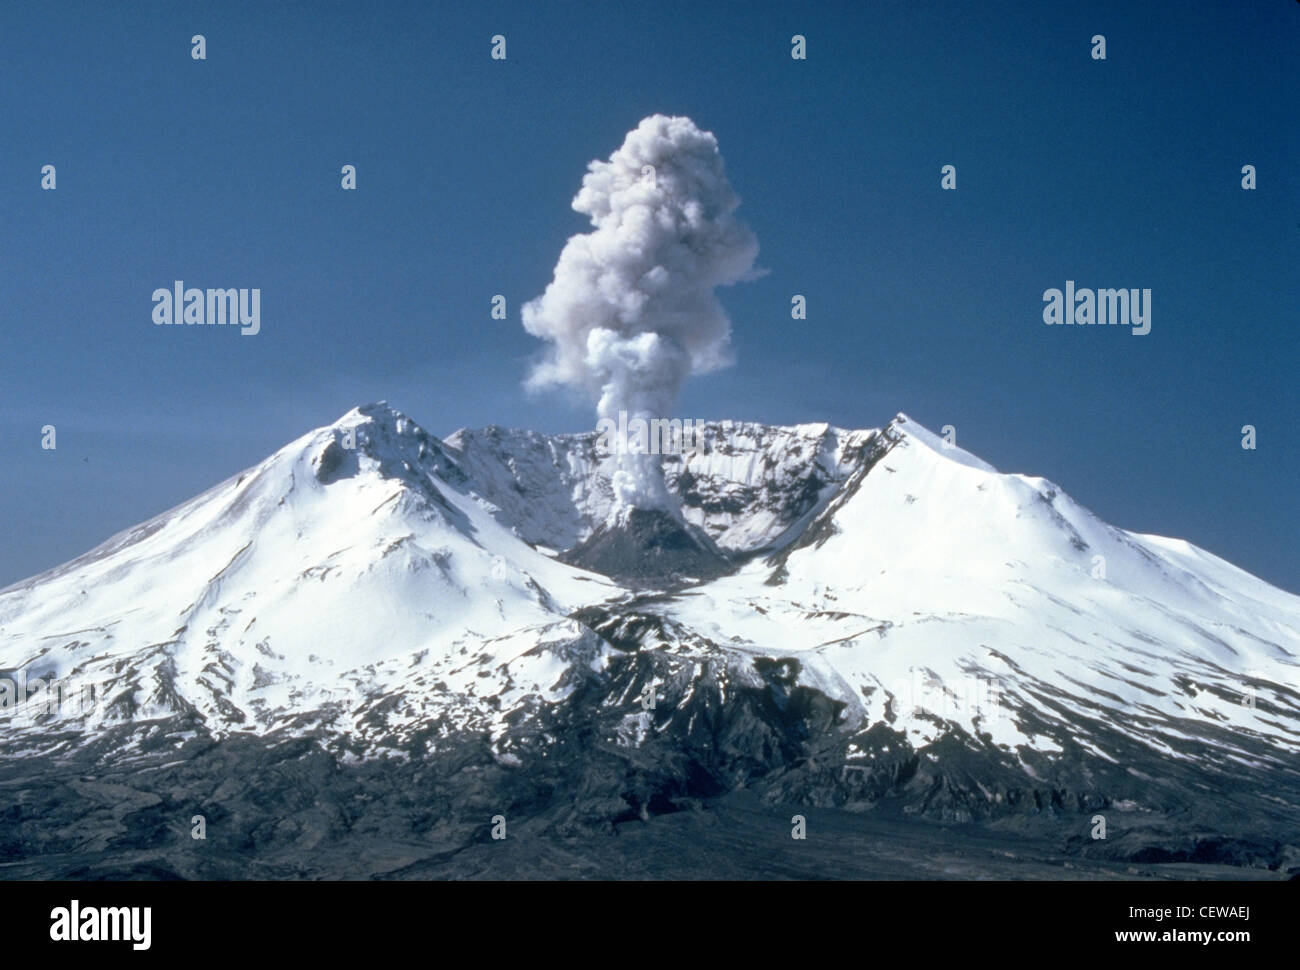 Plumes of steam, gas, and ash often occured at Mount St. Helens in the early 1980s. On clear days they could be - Stock Image